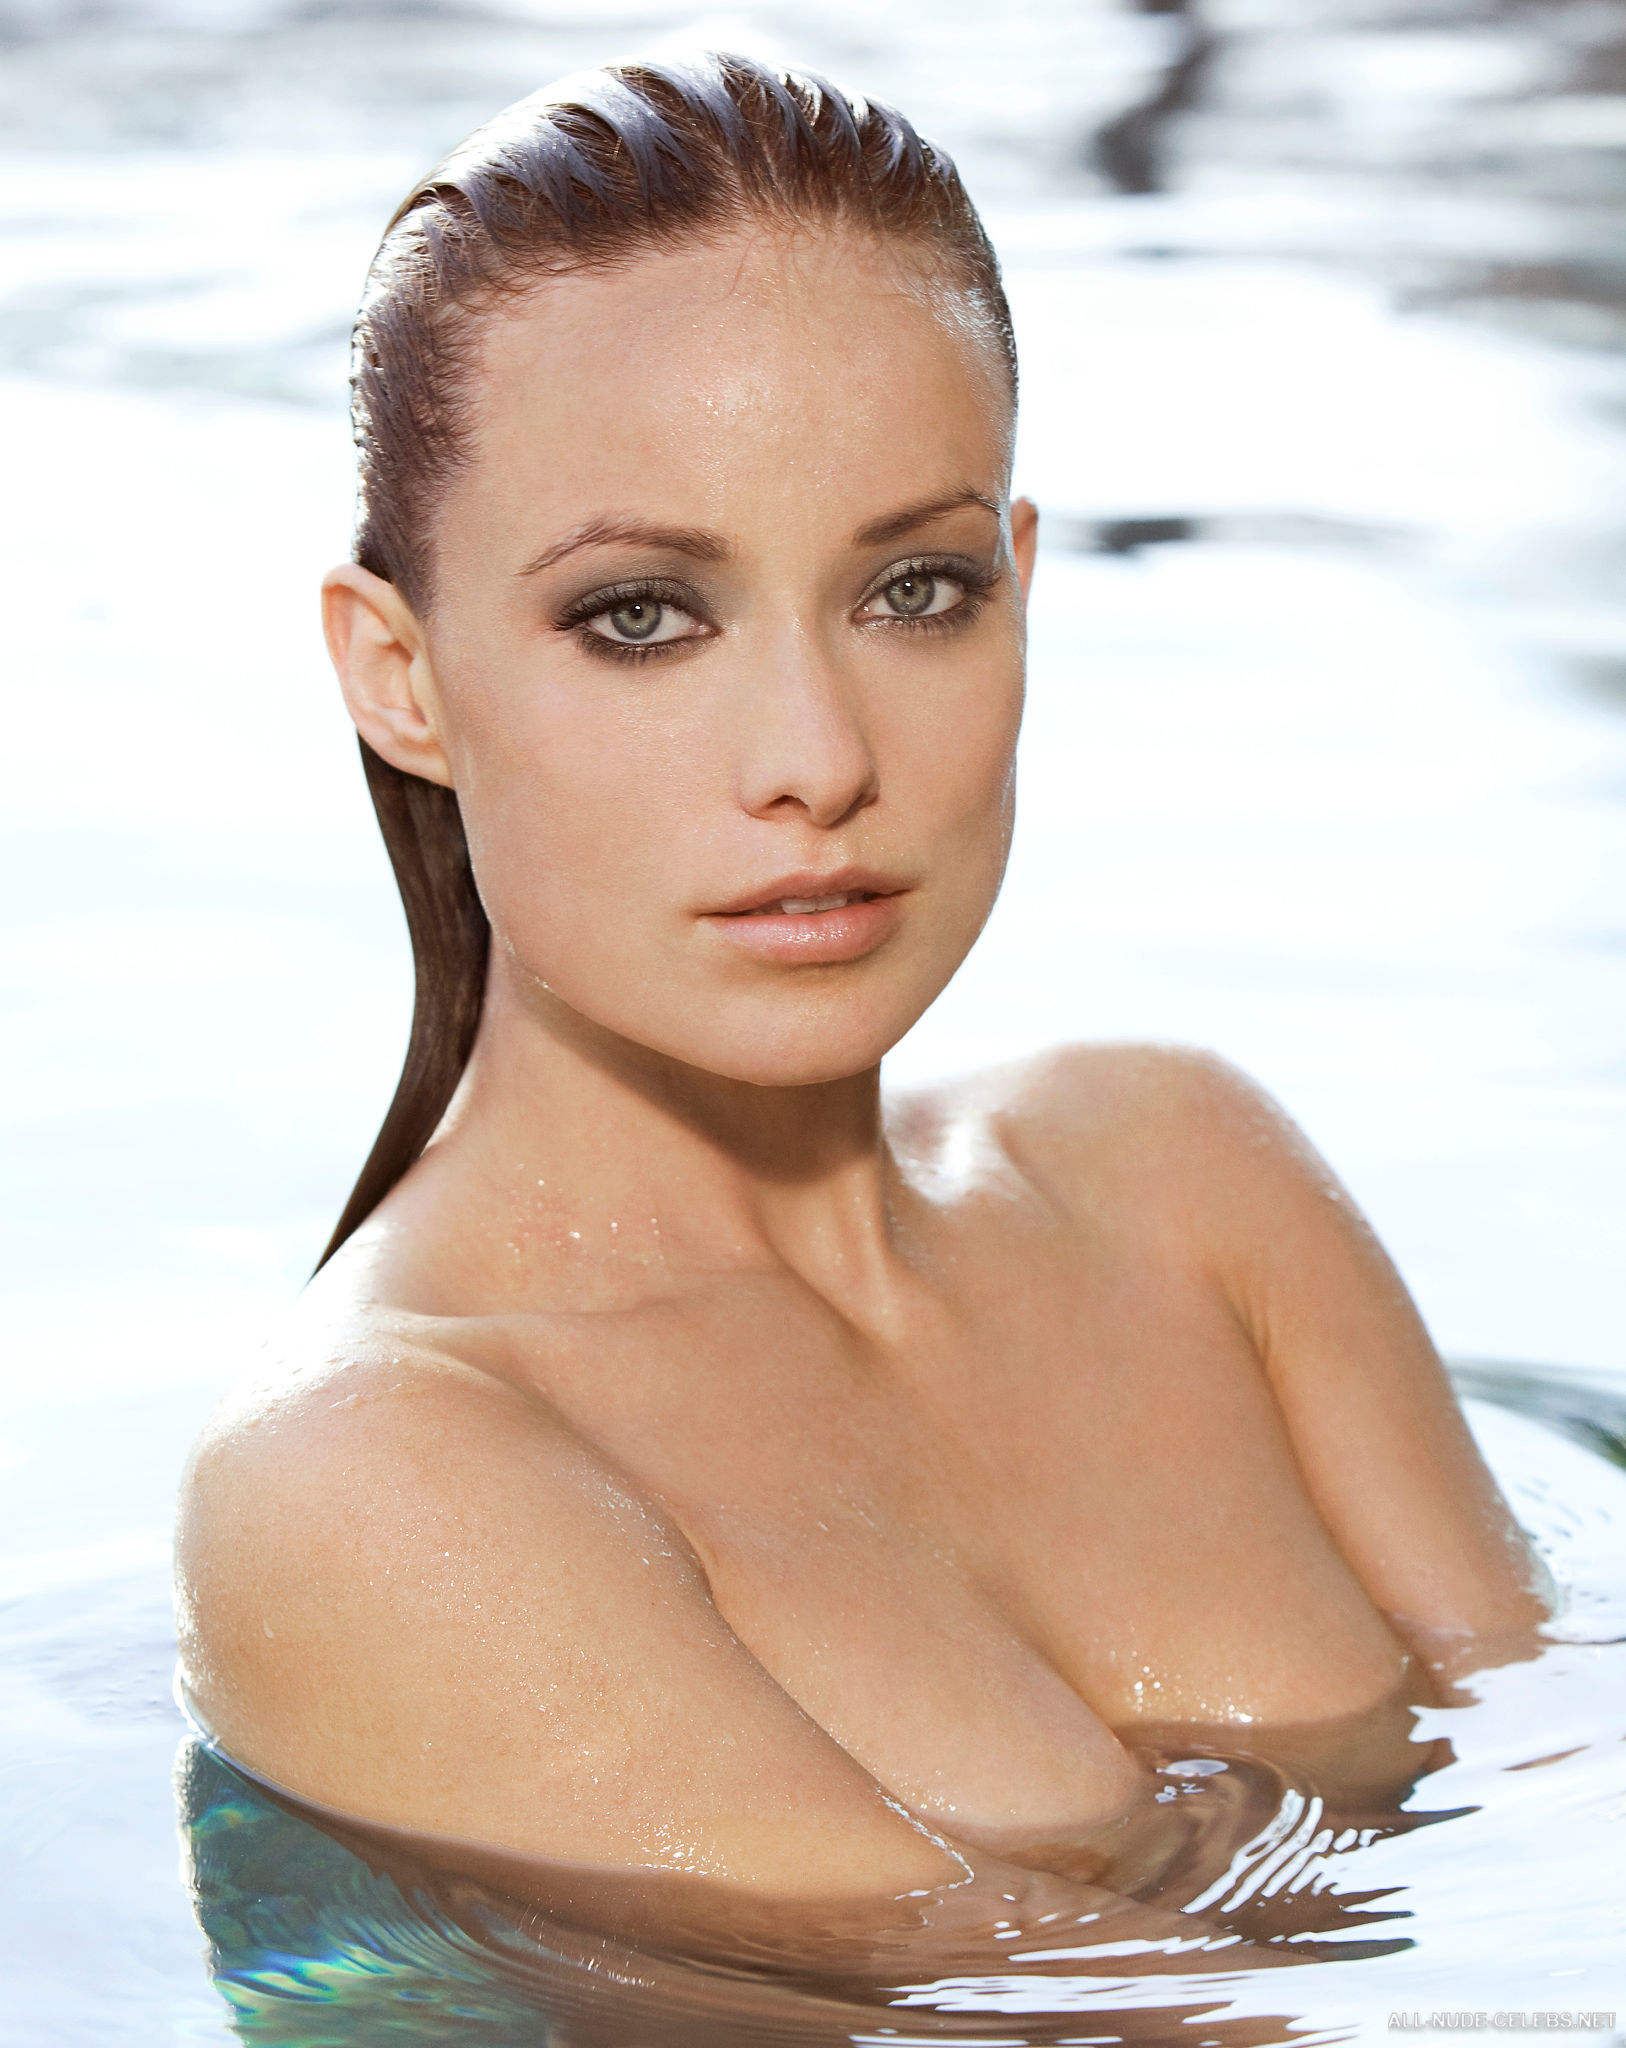 Olivia wilde completely naked best porno